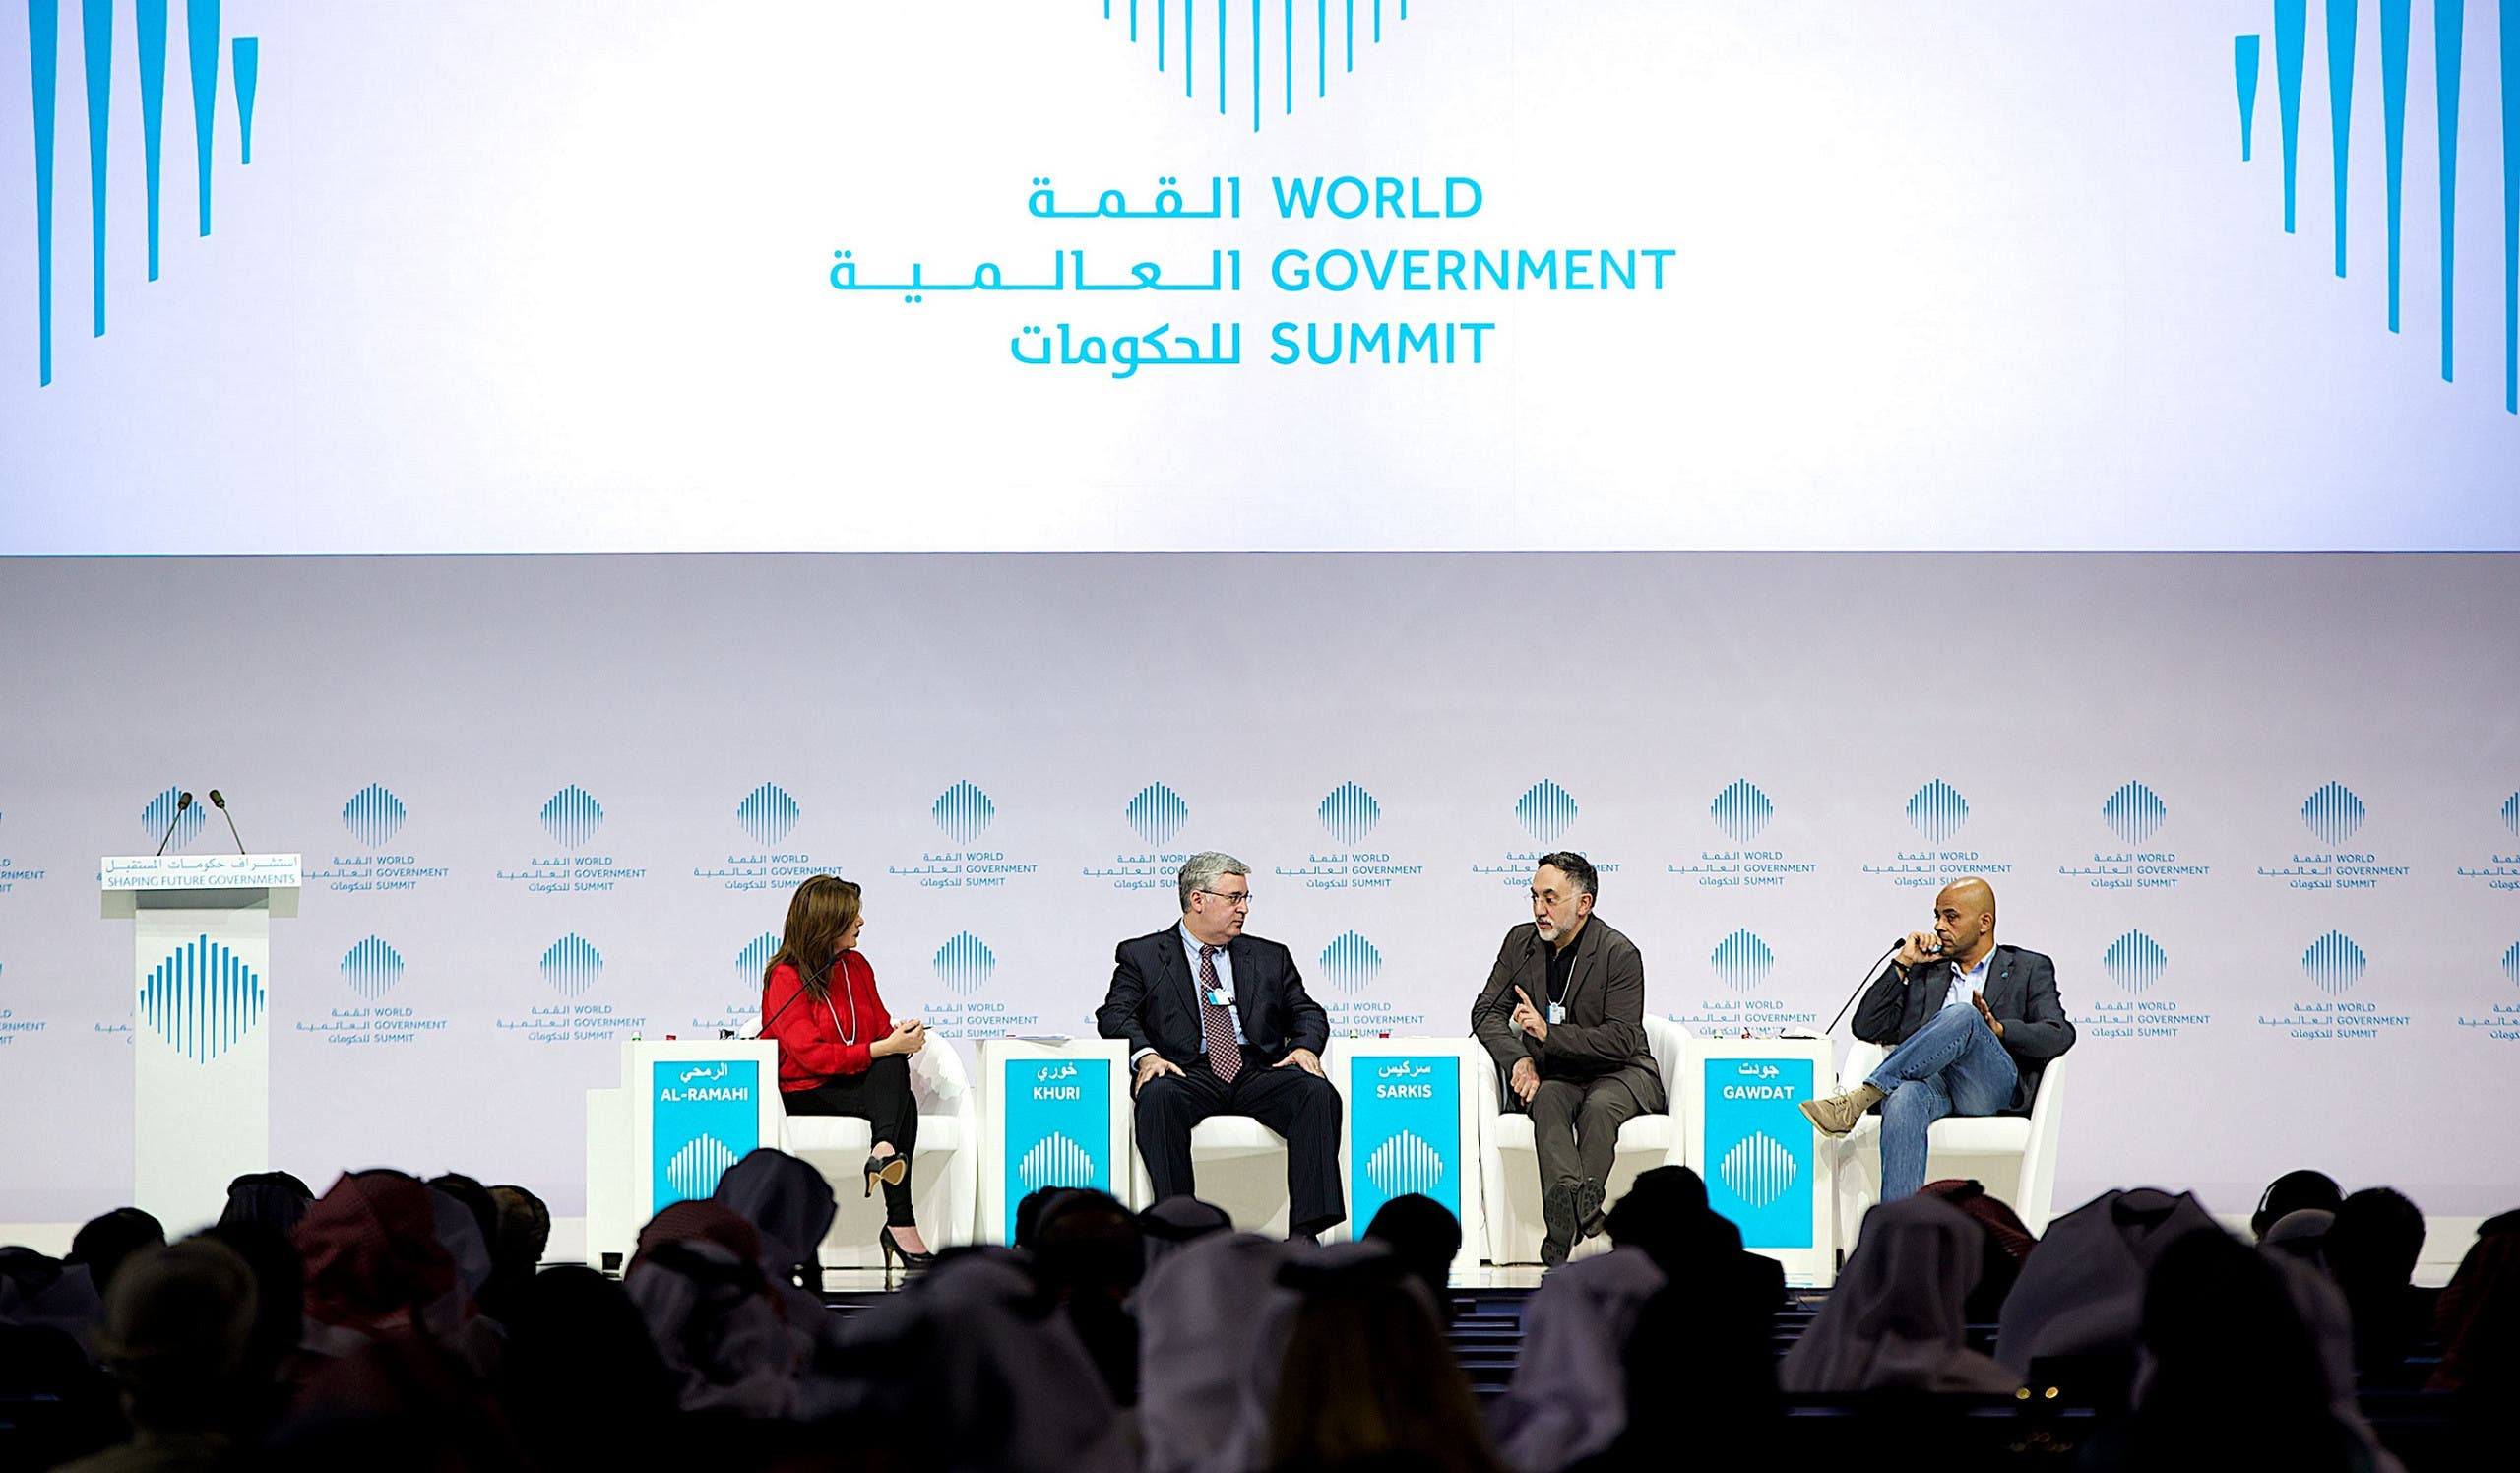 How to attract students back to the Middle East was a focus on one panel discussion at the World Government Summit. (WGS)